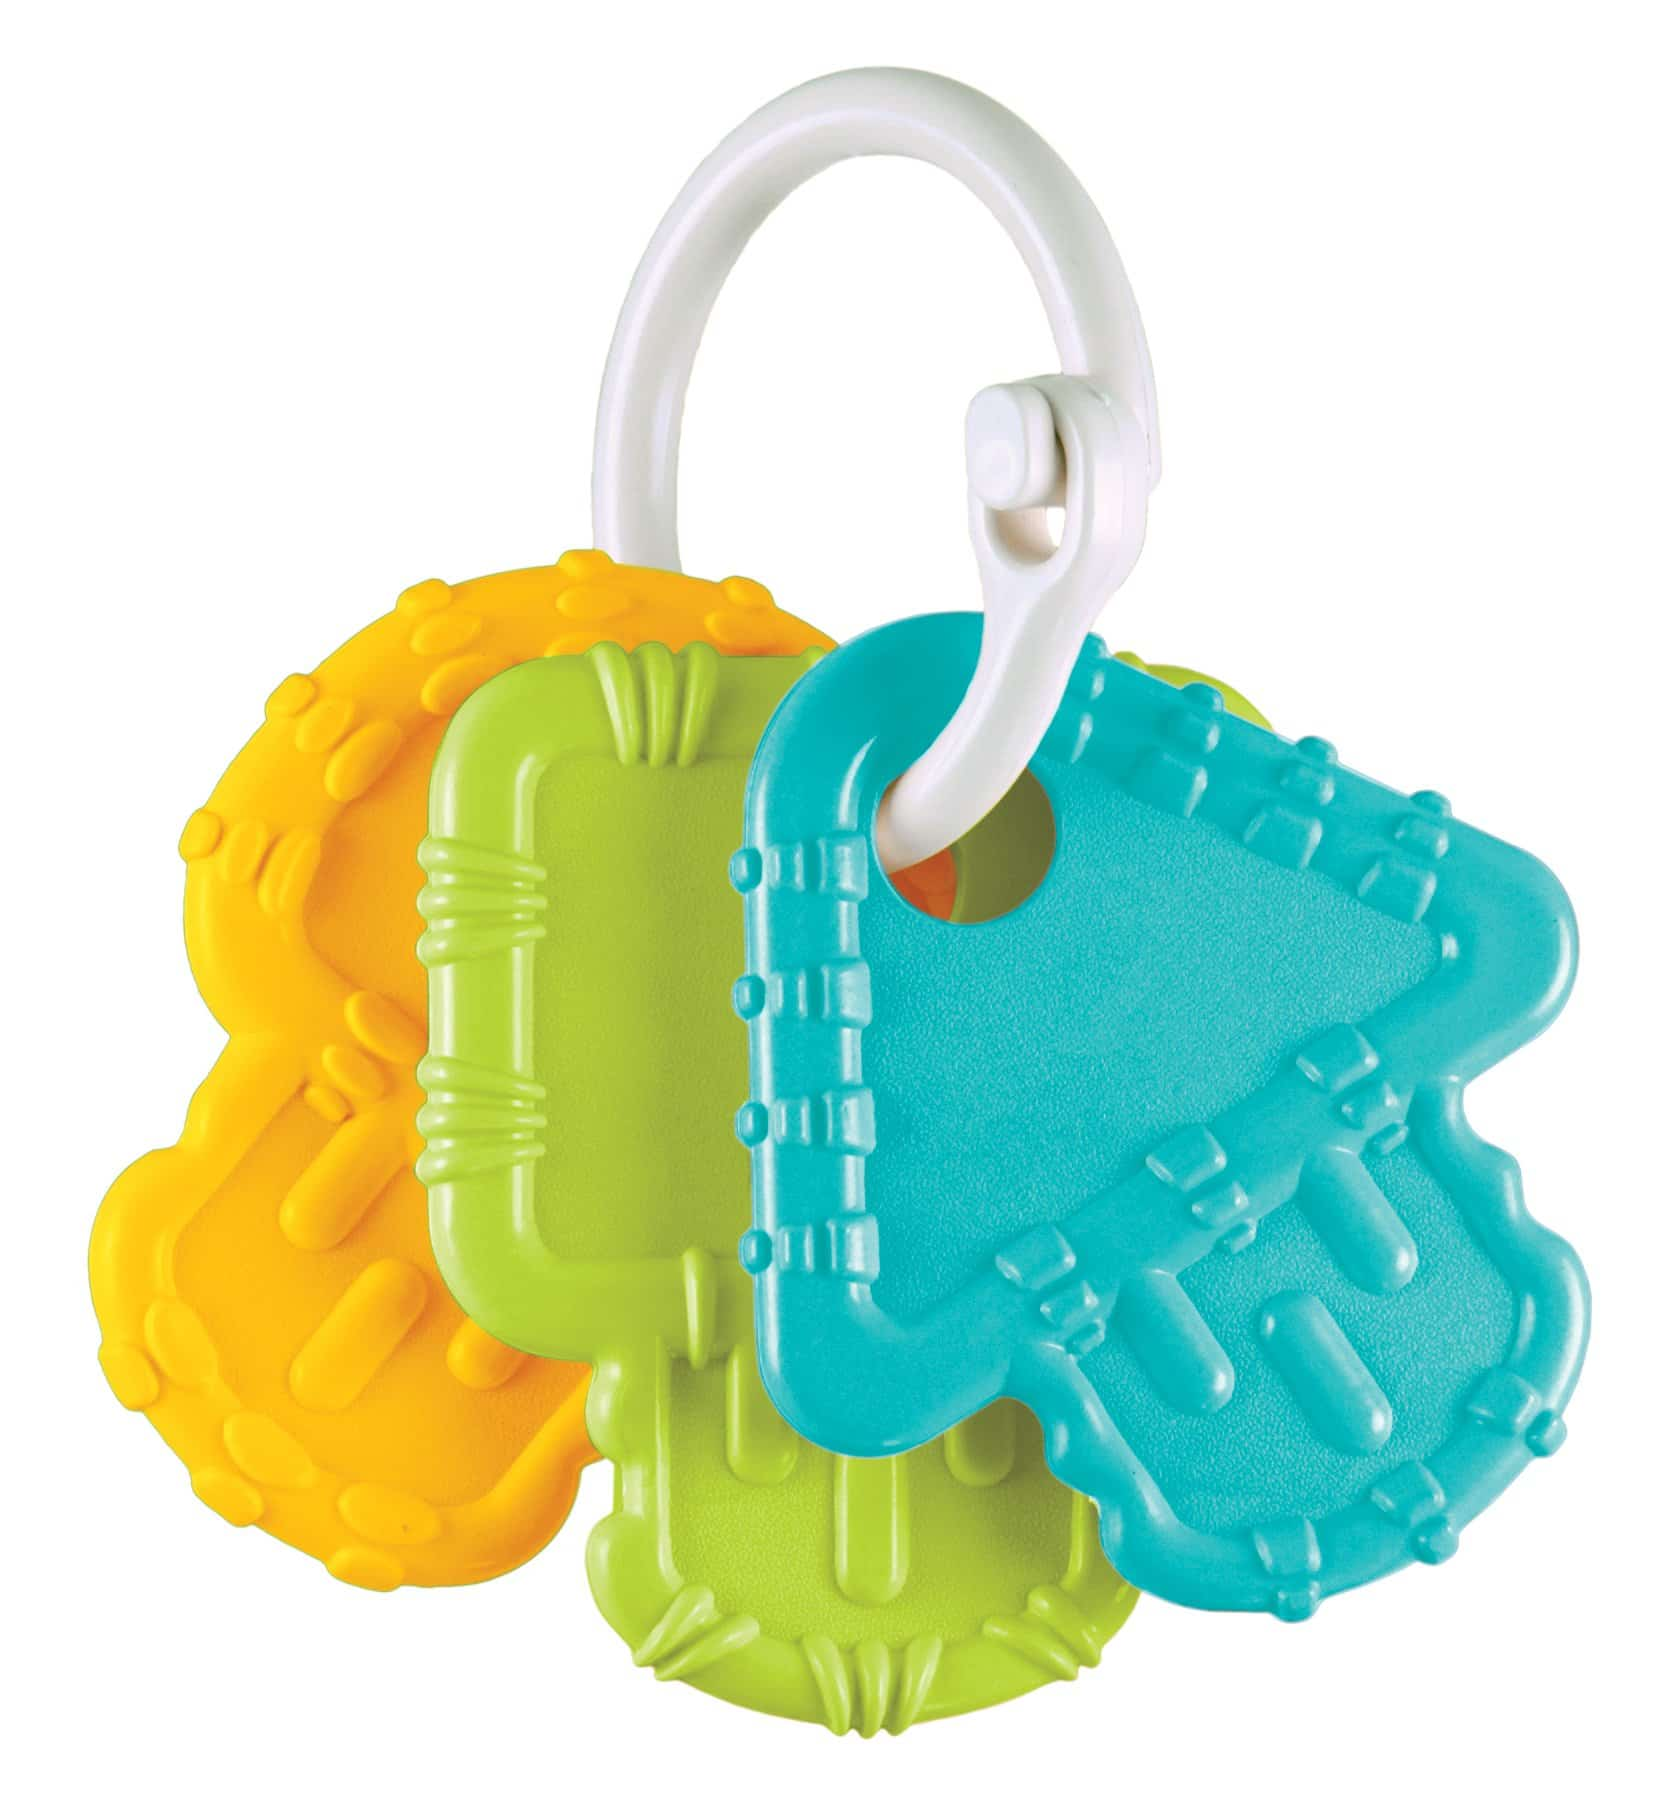 Re-play Teething Keys - Ecotree Baby Boutique